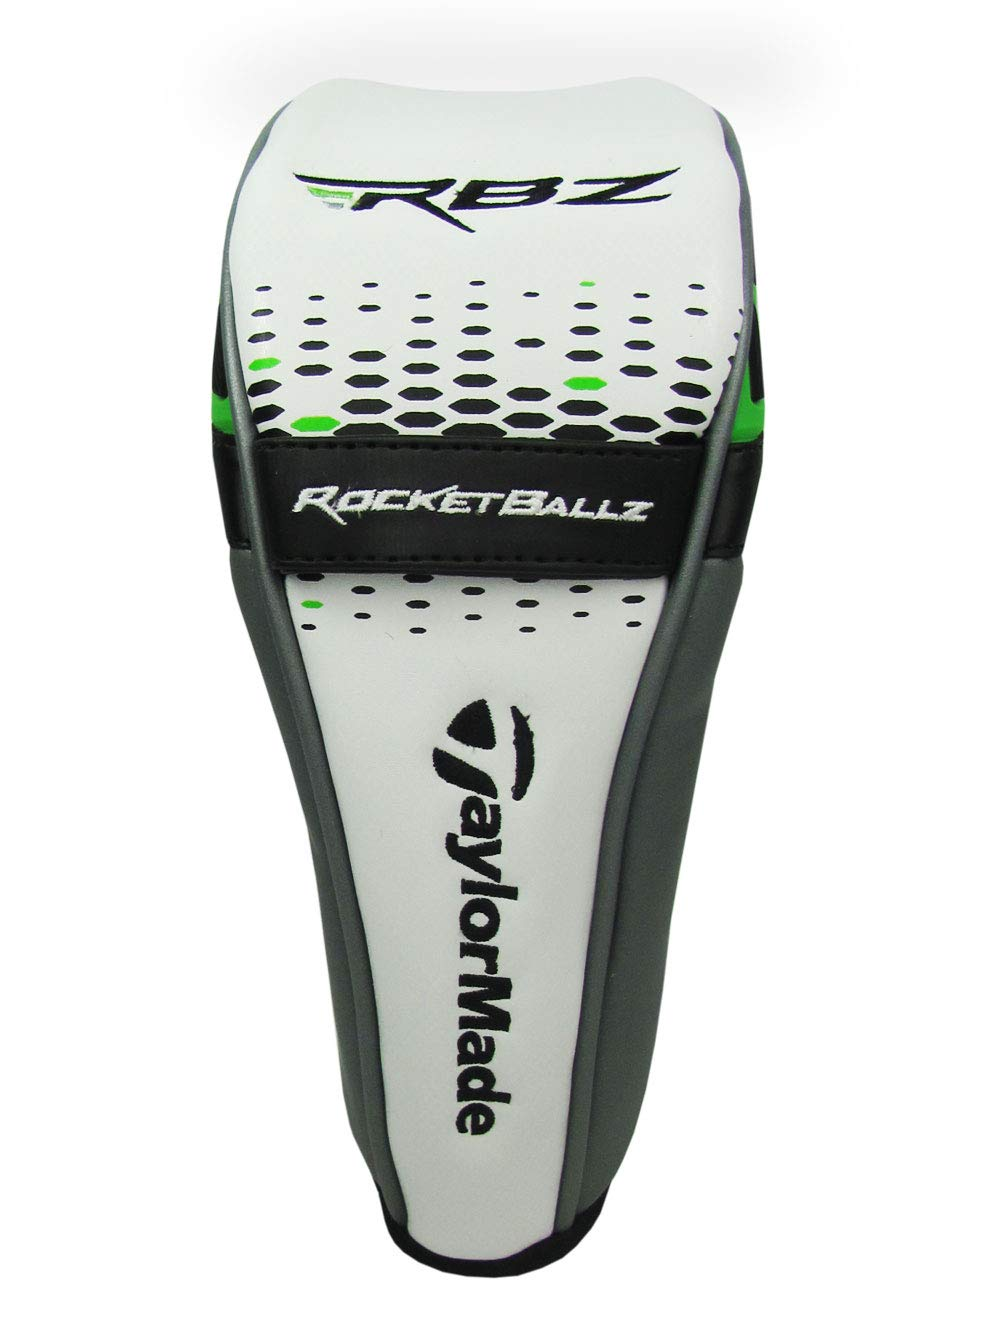 Amazon.com : TaylorMade Golf RBZ Rocketballz Rescue Hybrid 24#5 Regular Flex : Sports & Outdoors